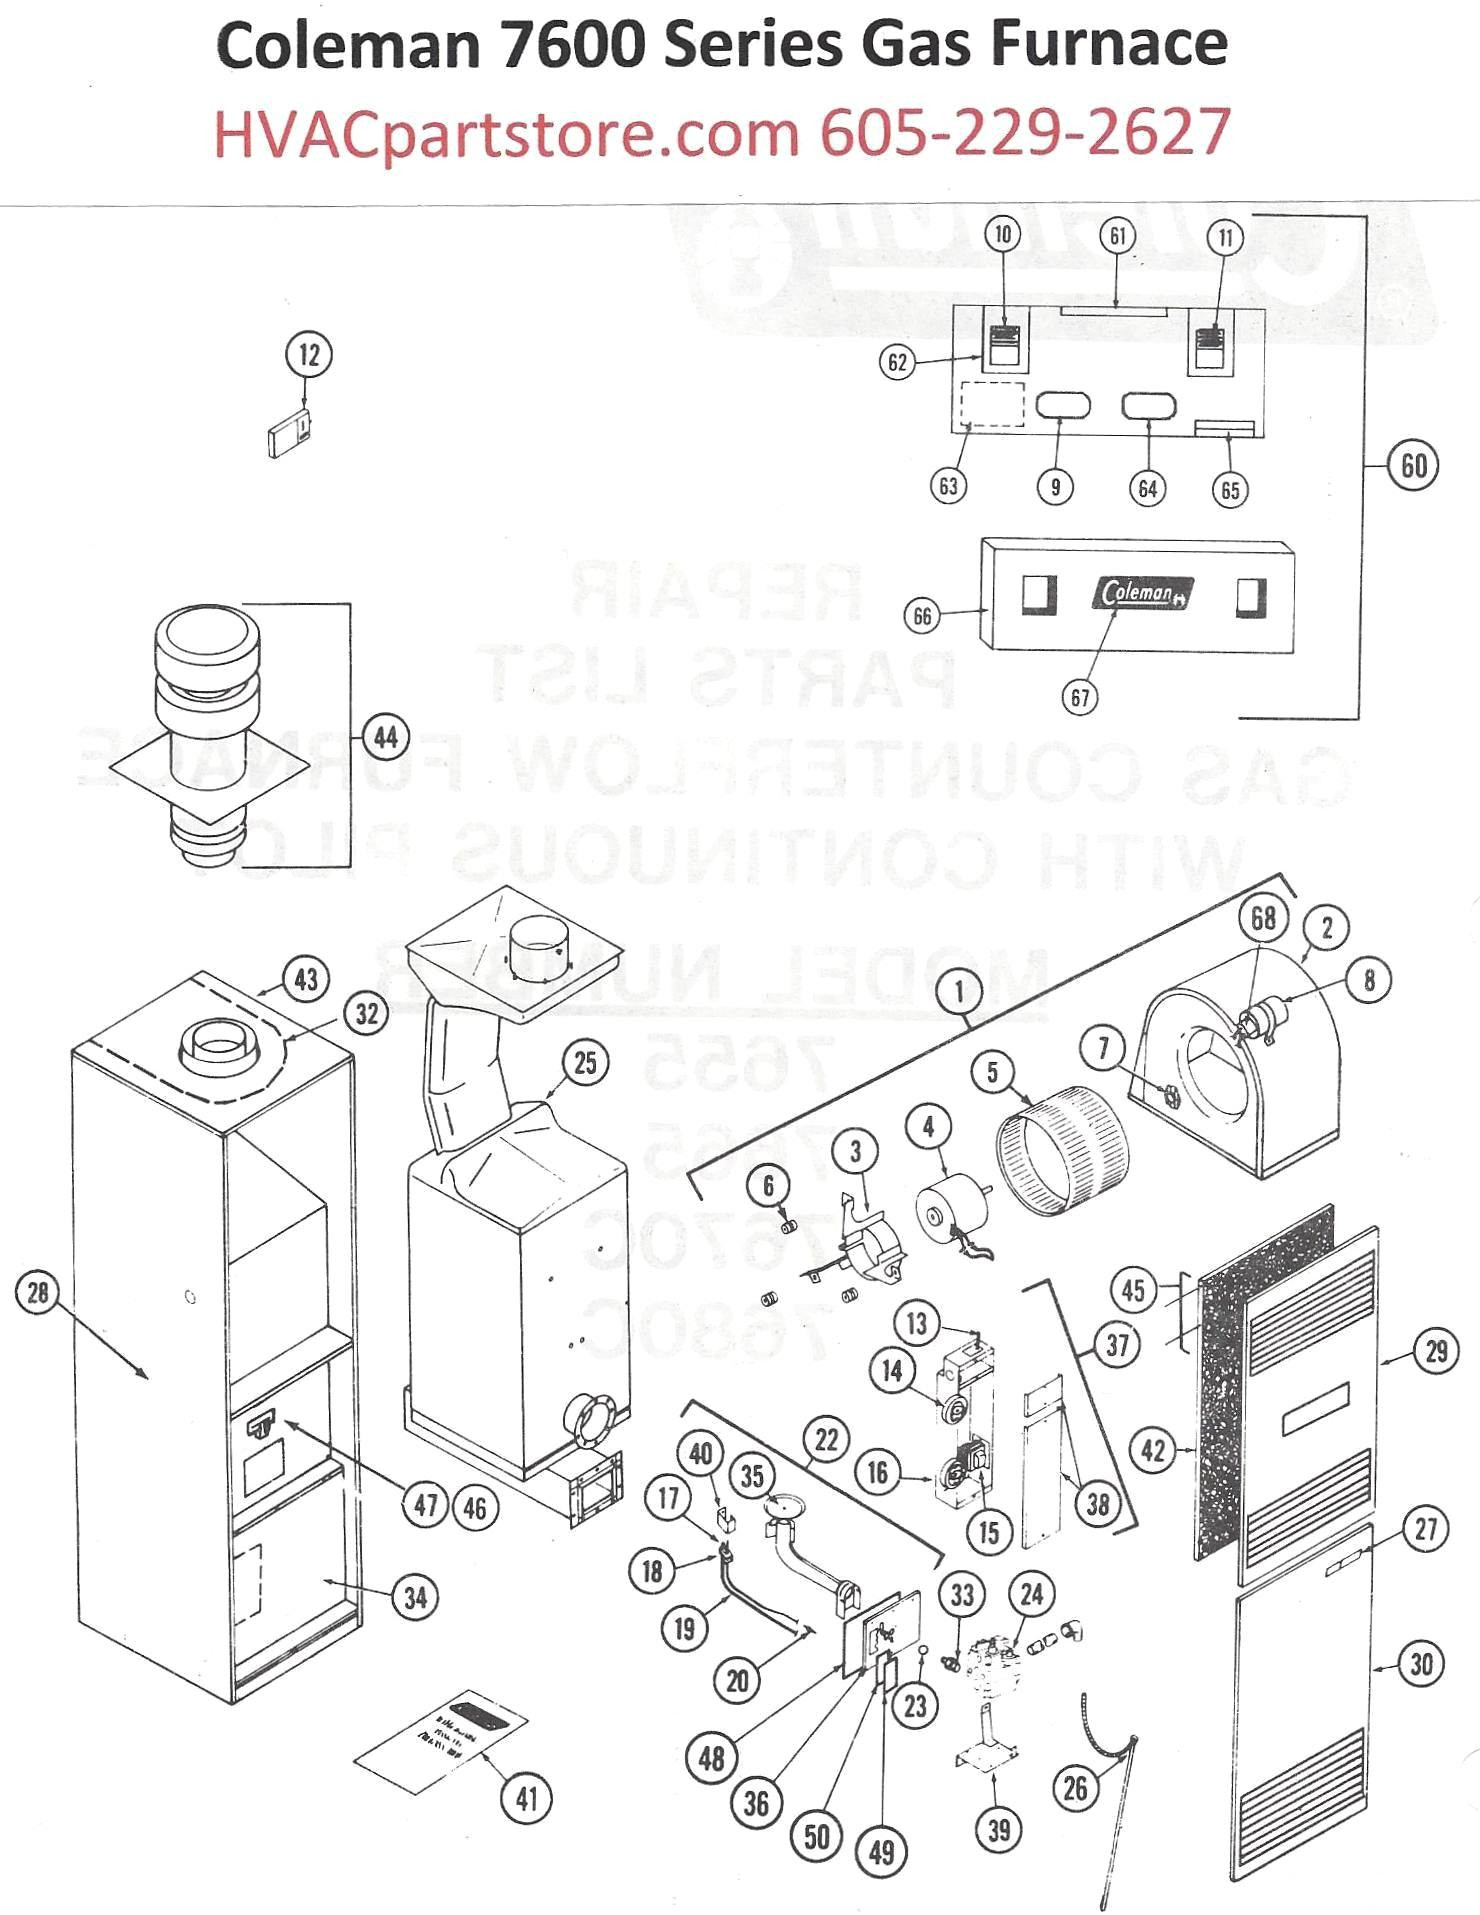 miller foot pedal wiring diagram Collection-Miller Foot Pedal Wiring Diagram York Gas Furnace Wiring Diagram Fresh York Gas Furnace Wiring 2-r